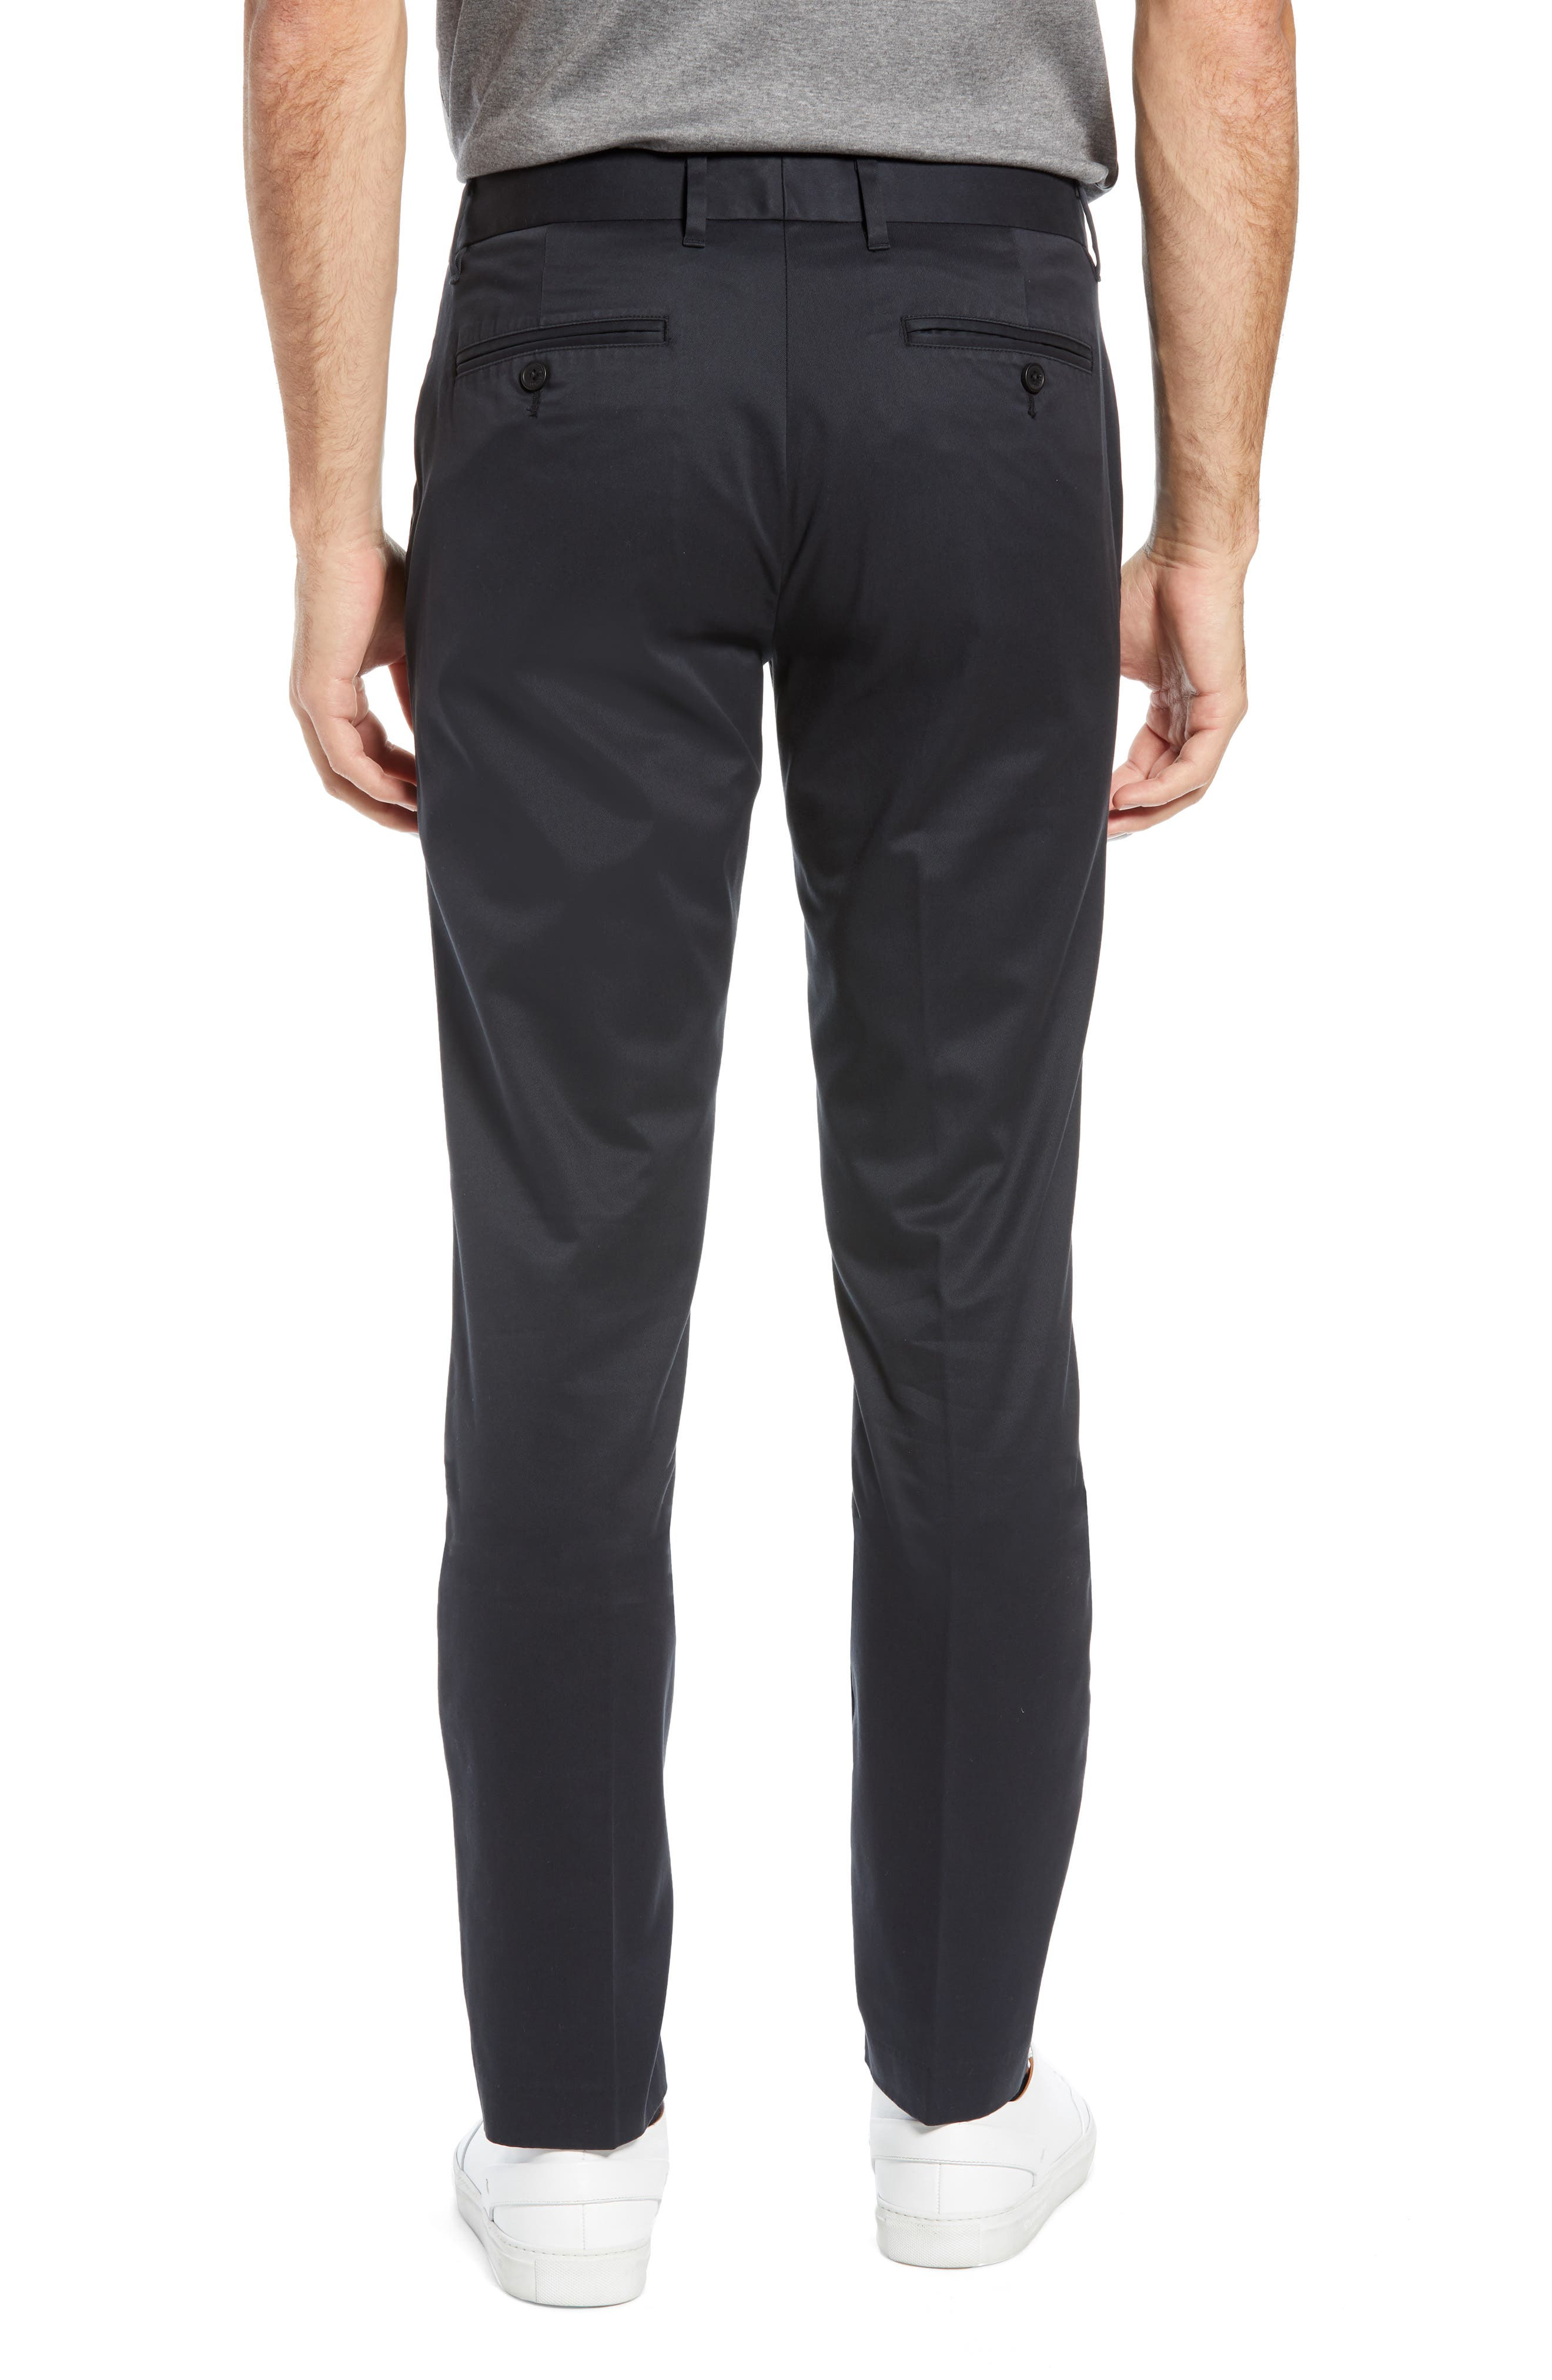 BONOBOS, Weekday Warrior Tailored Fit Stretch Dress Pants, Alternate thumbnail 2, color, BLACK